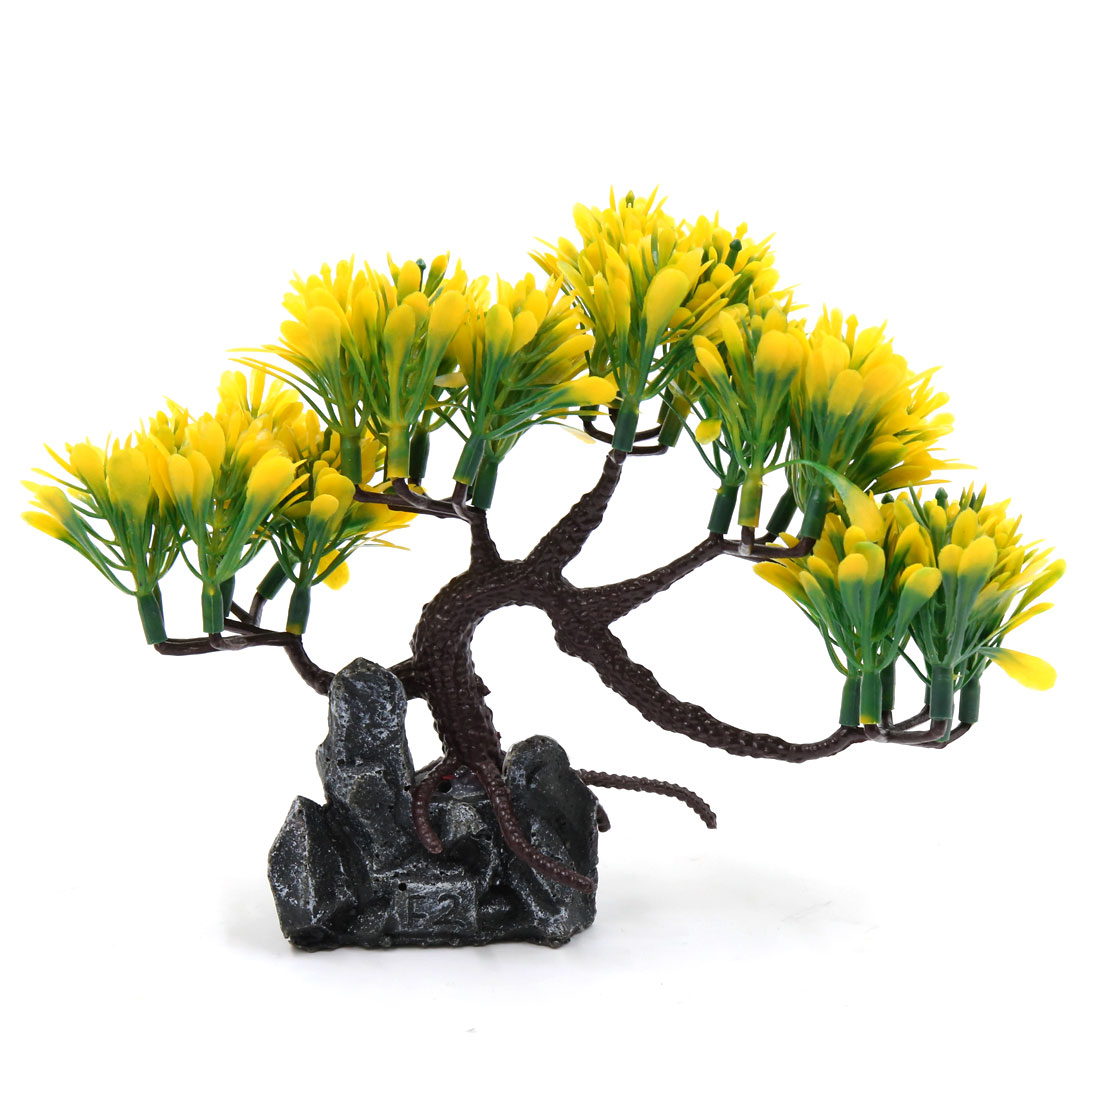 rium Decorative Plastic Plant Landscape Ornament Home Decoration Yellow